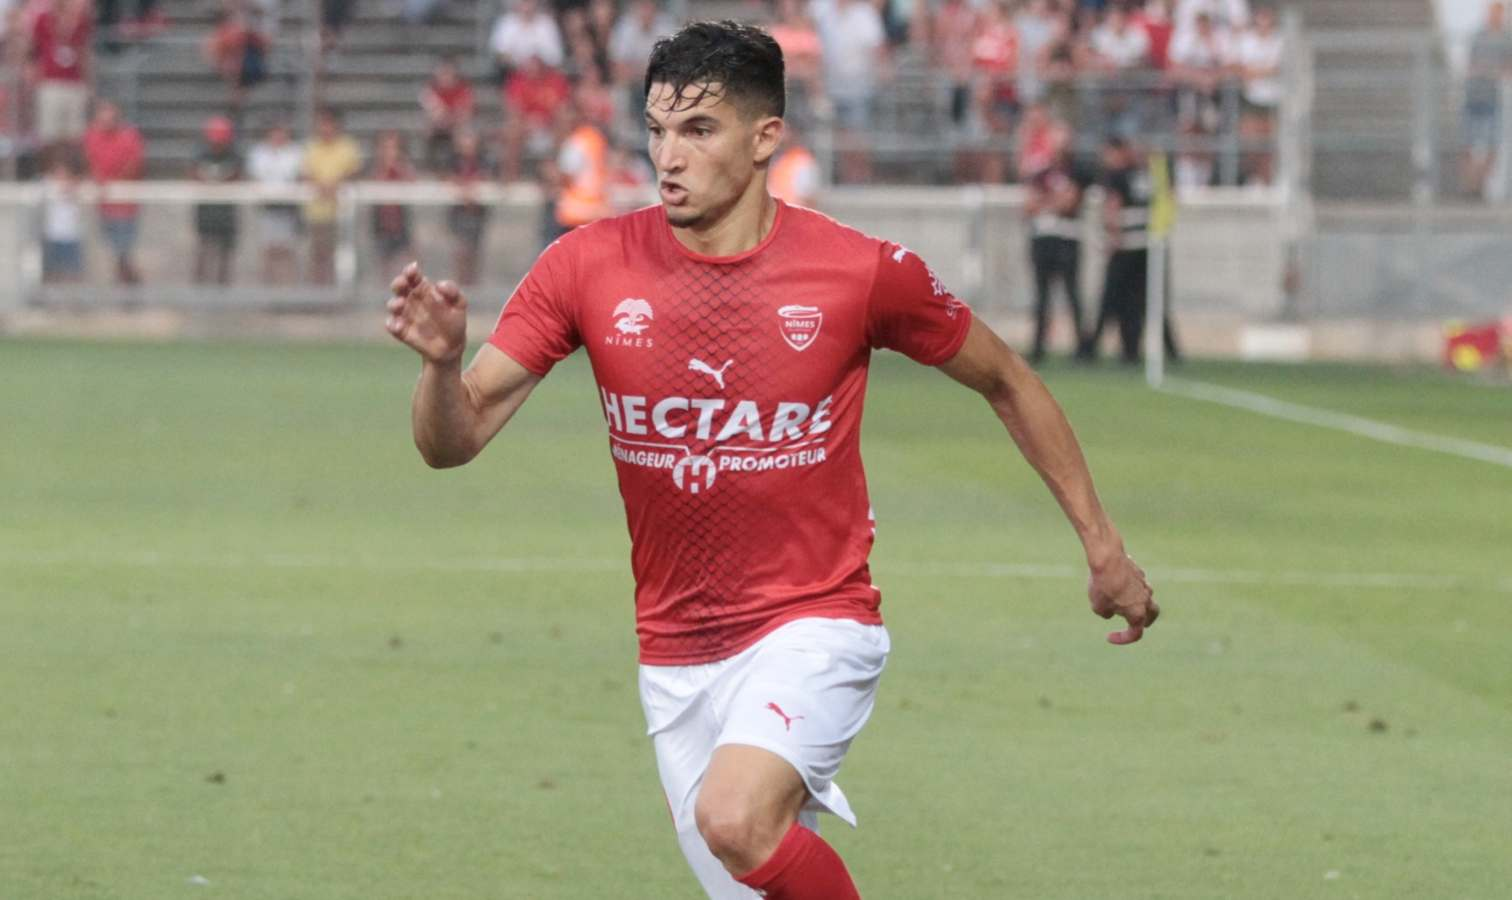 Nimes Ferhat Operationnel Face A Rennes